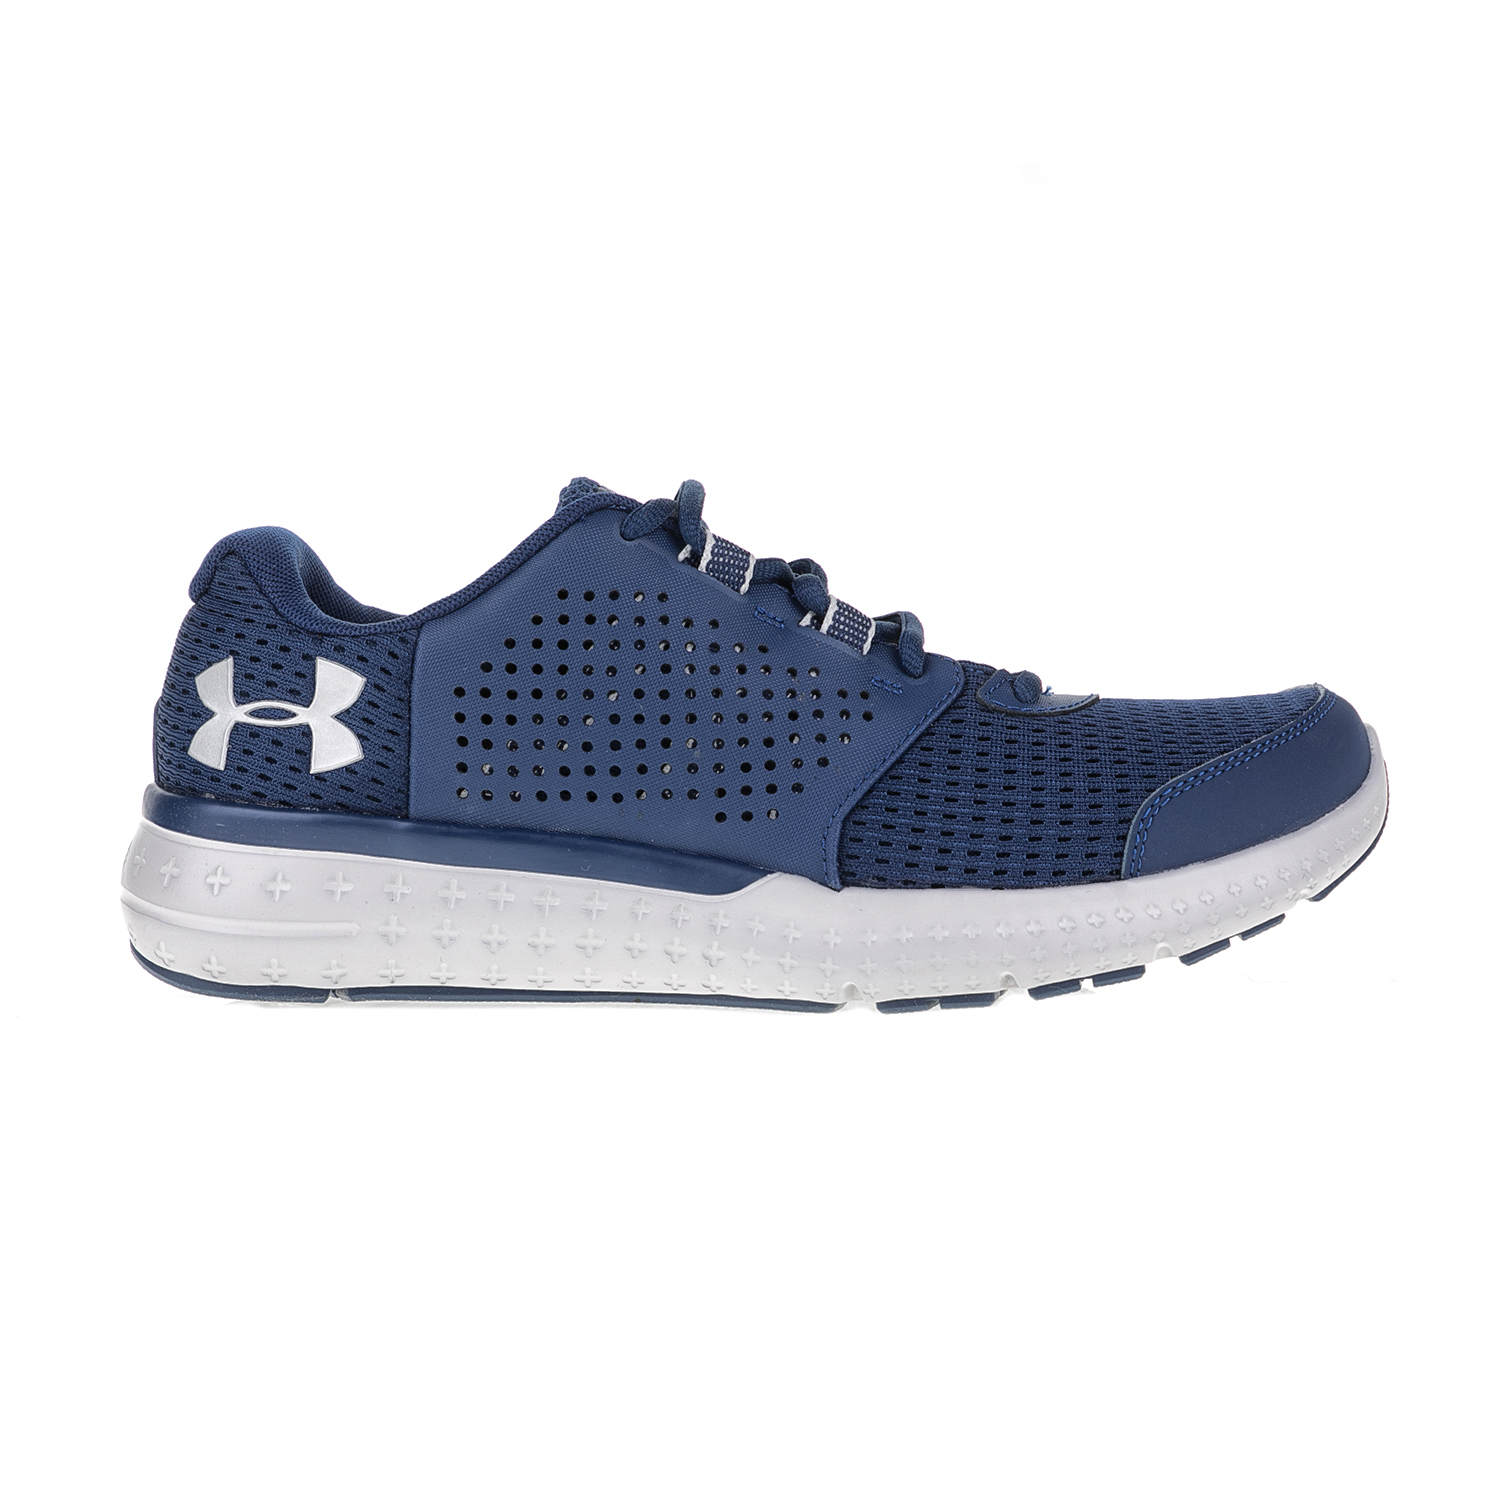 301a6bb2307 UNDER ARMOUR – Ανδρικά αθλητικά παπούτσια UNDER ARMOUR Micro G Fuel RN  μπλε. Factoryoutlet